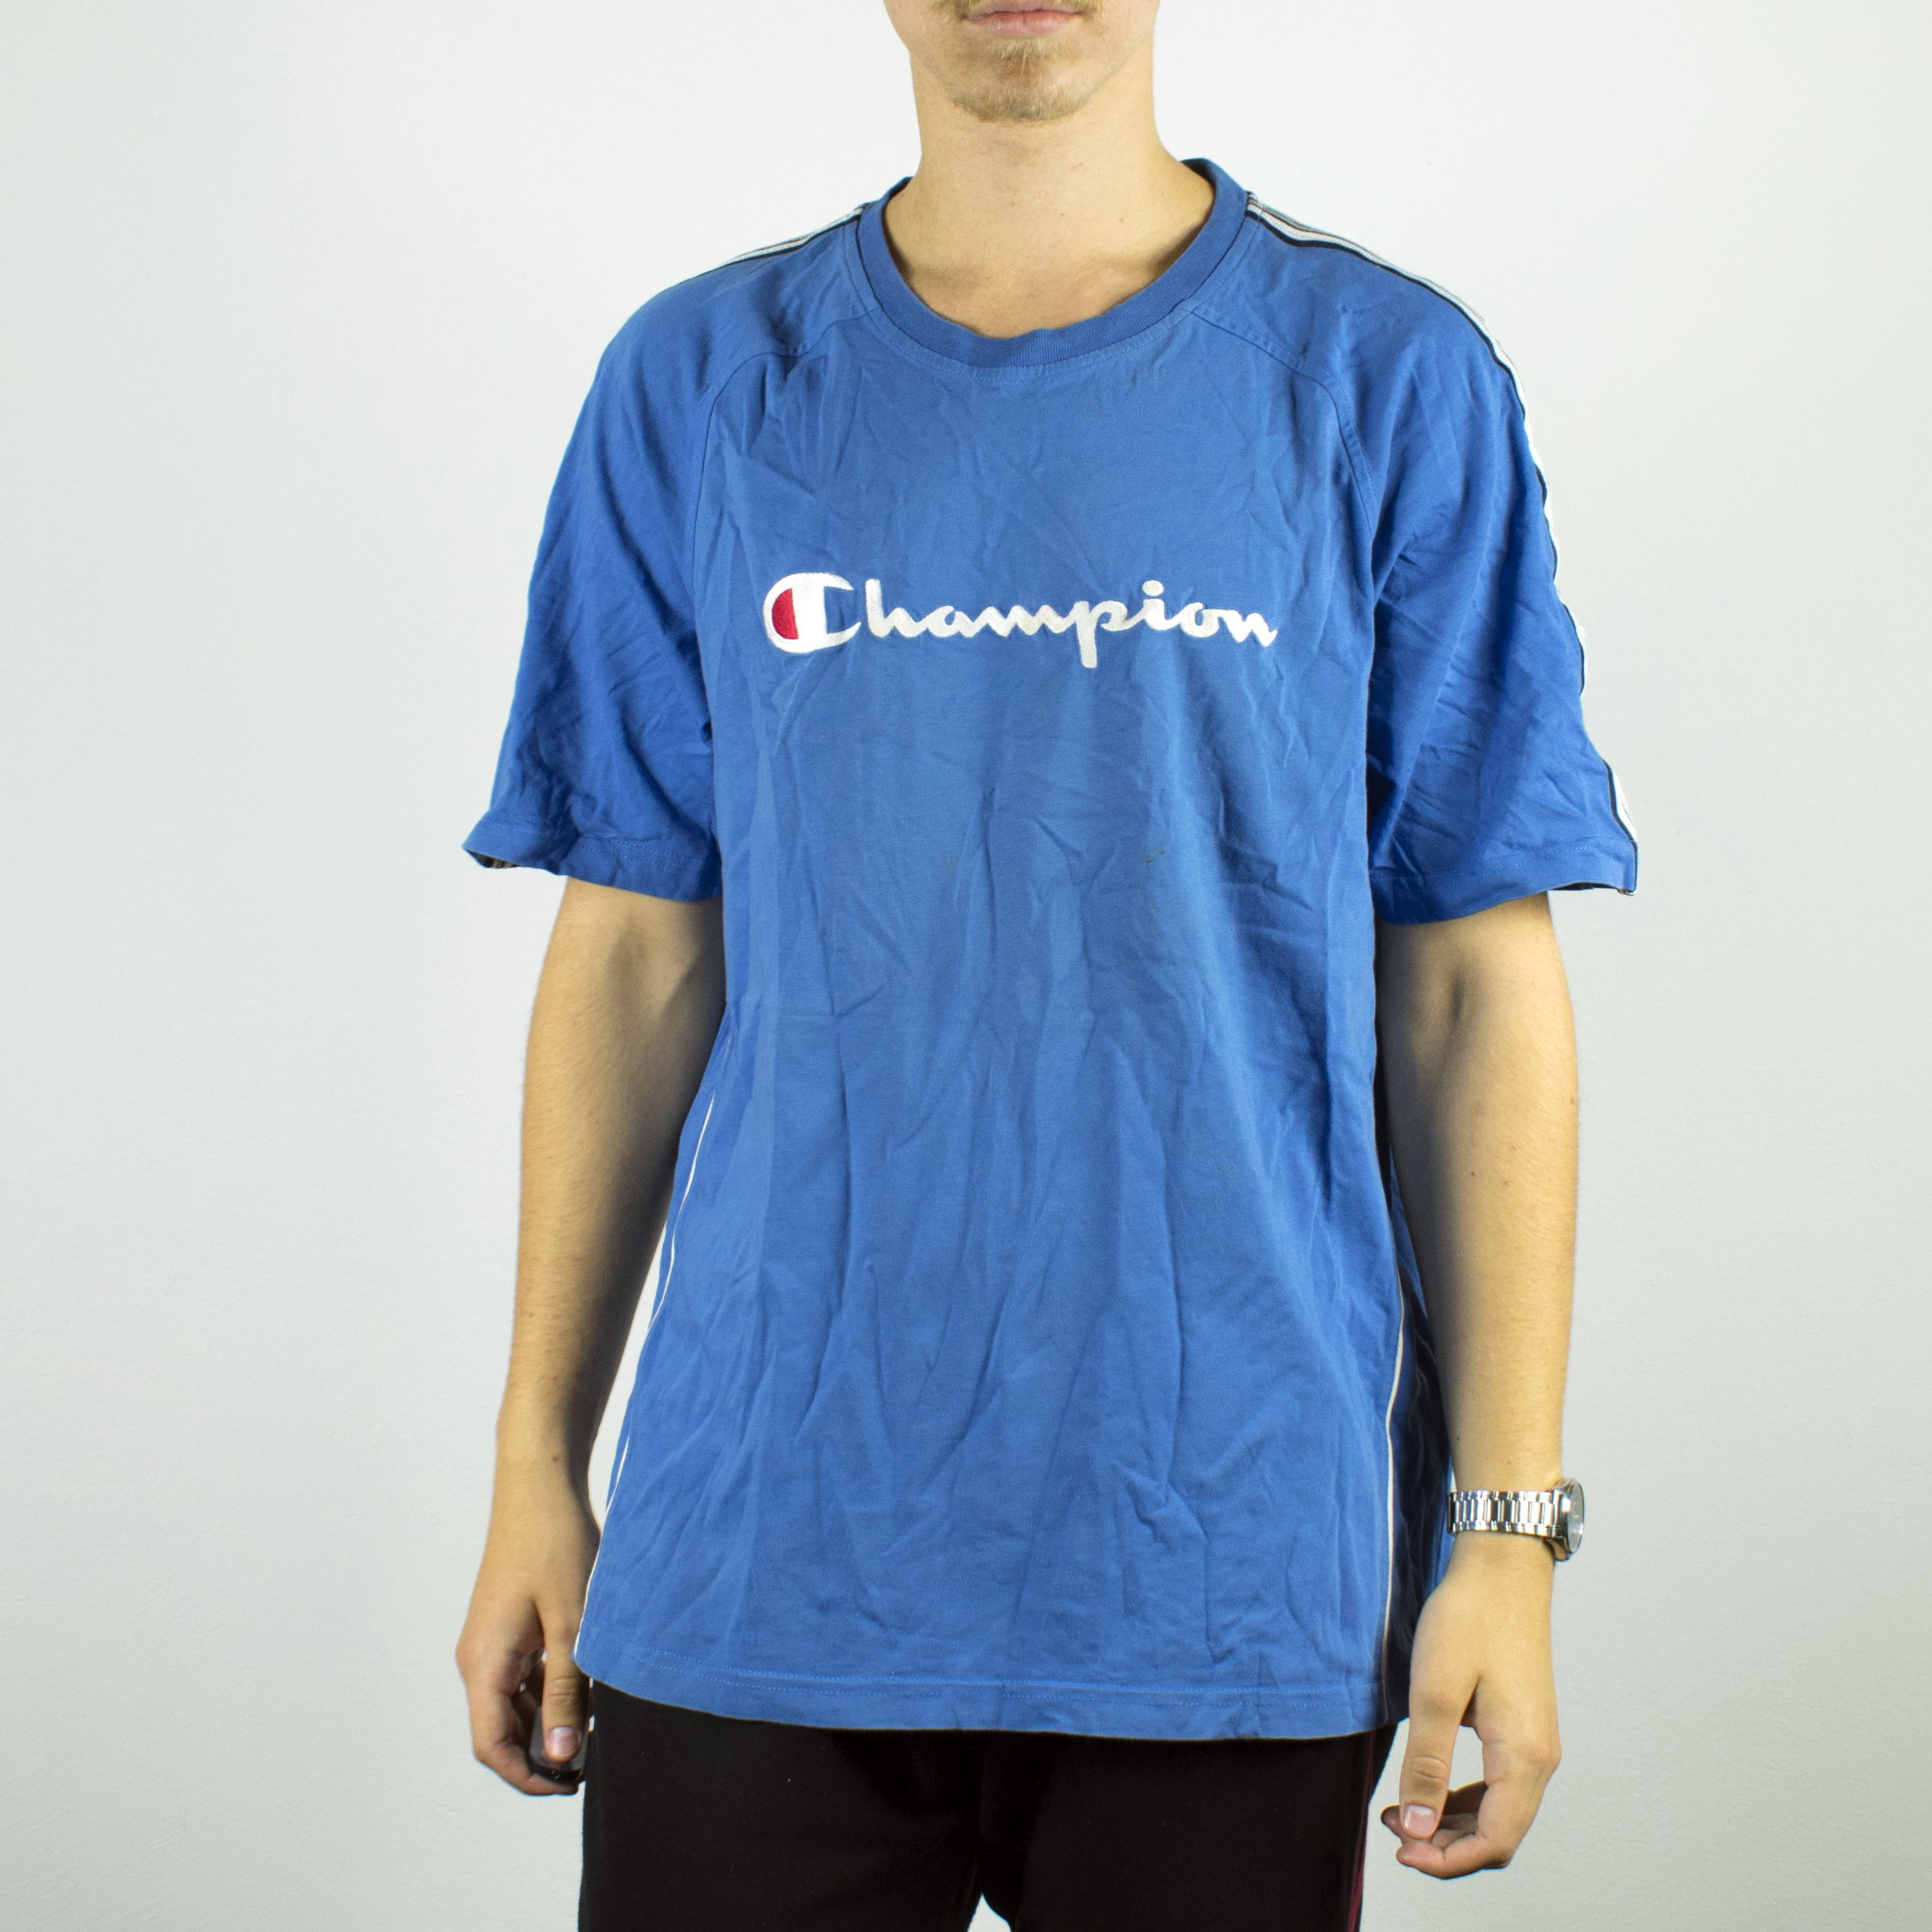 Unisex Vintage Champion t-shirt in cyan has a spellout on the front size L